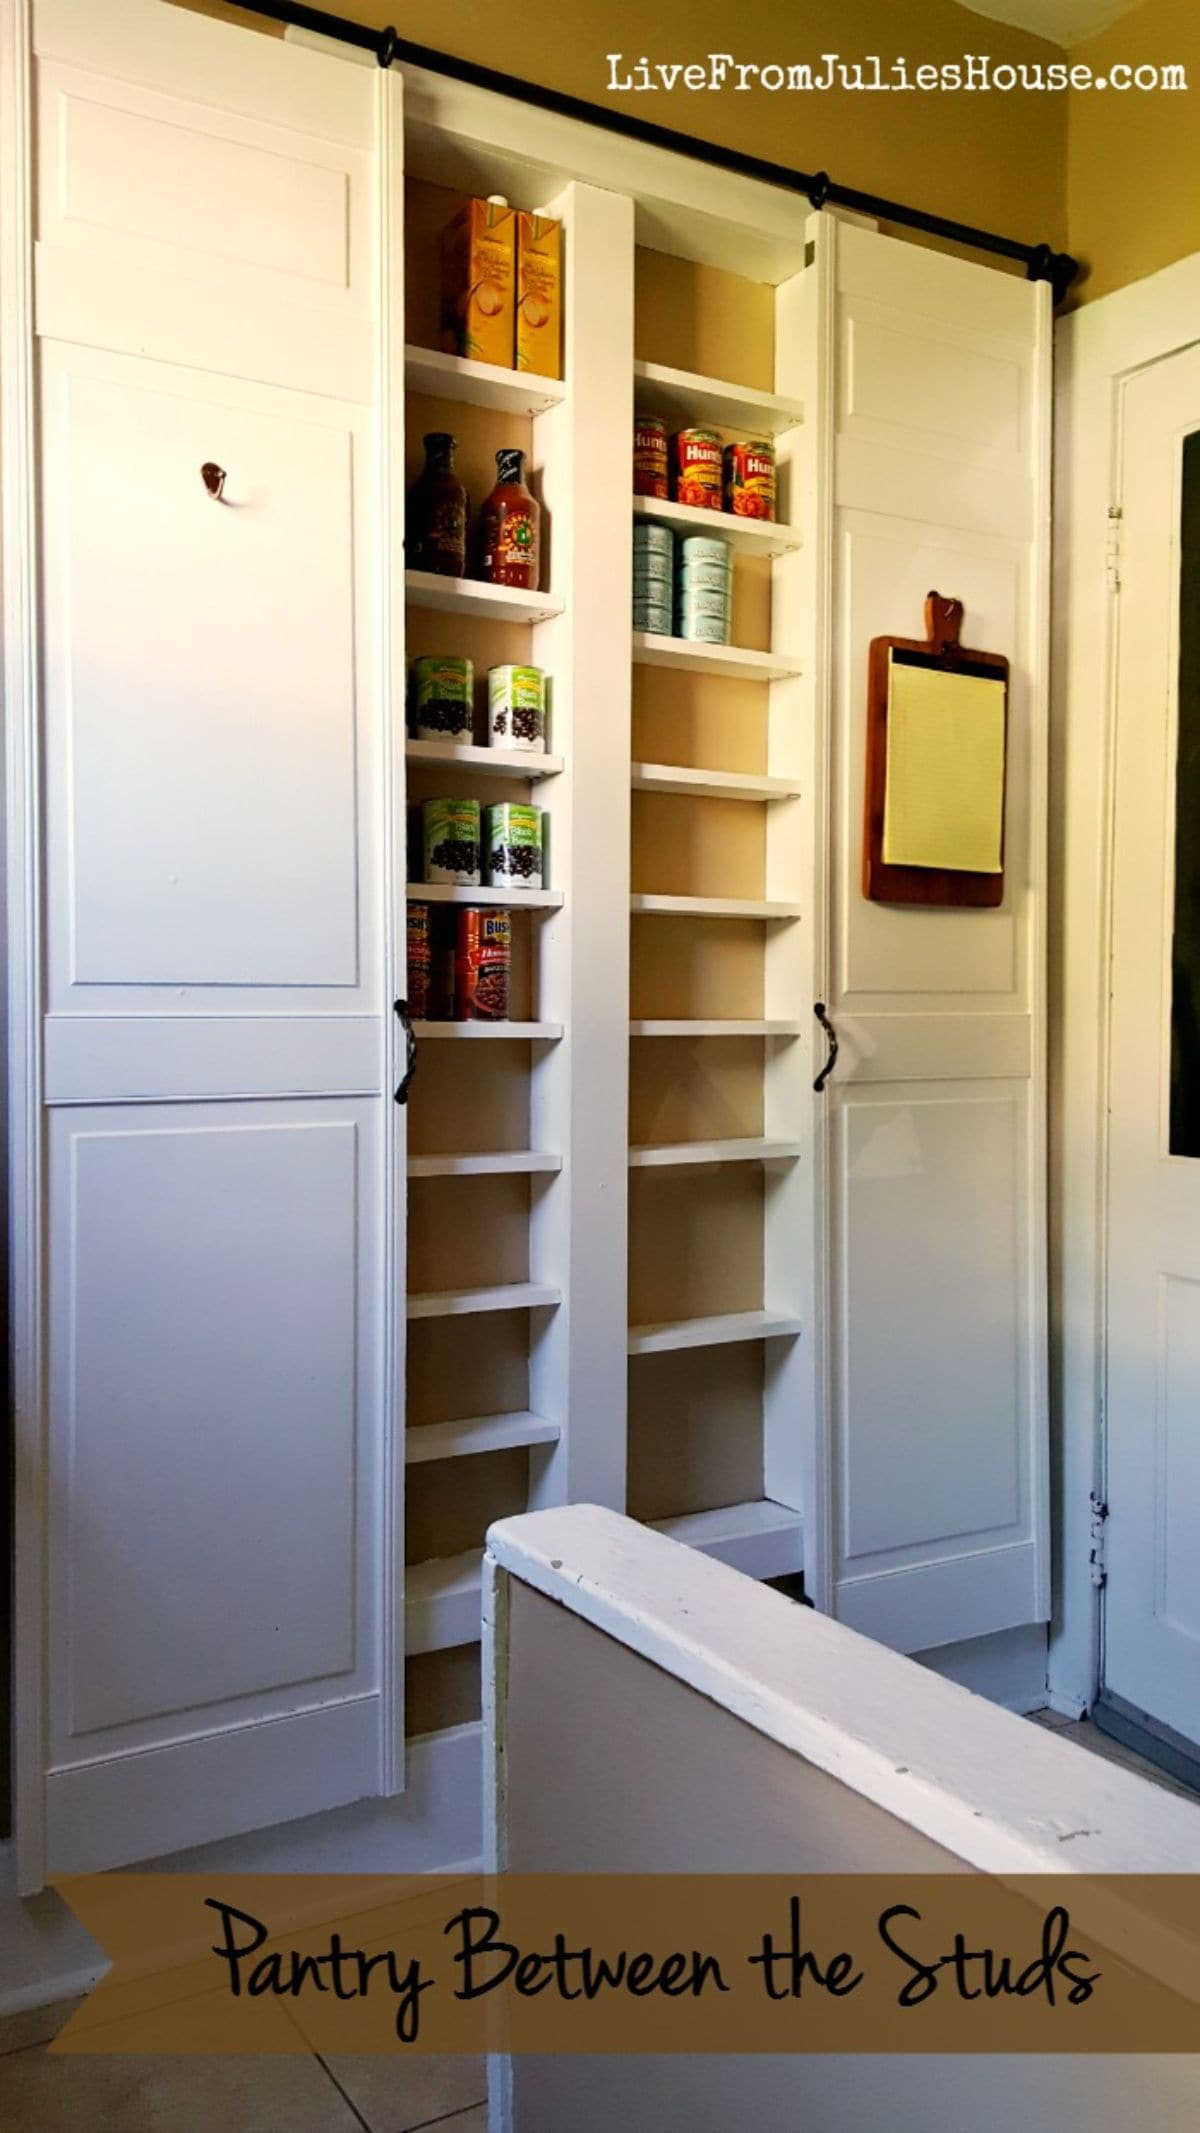 In between two white cabinets are two cut away spaces filled with shallow shelves.